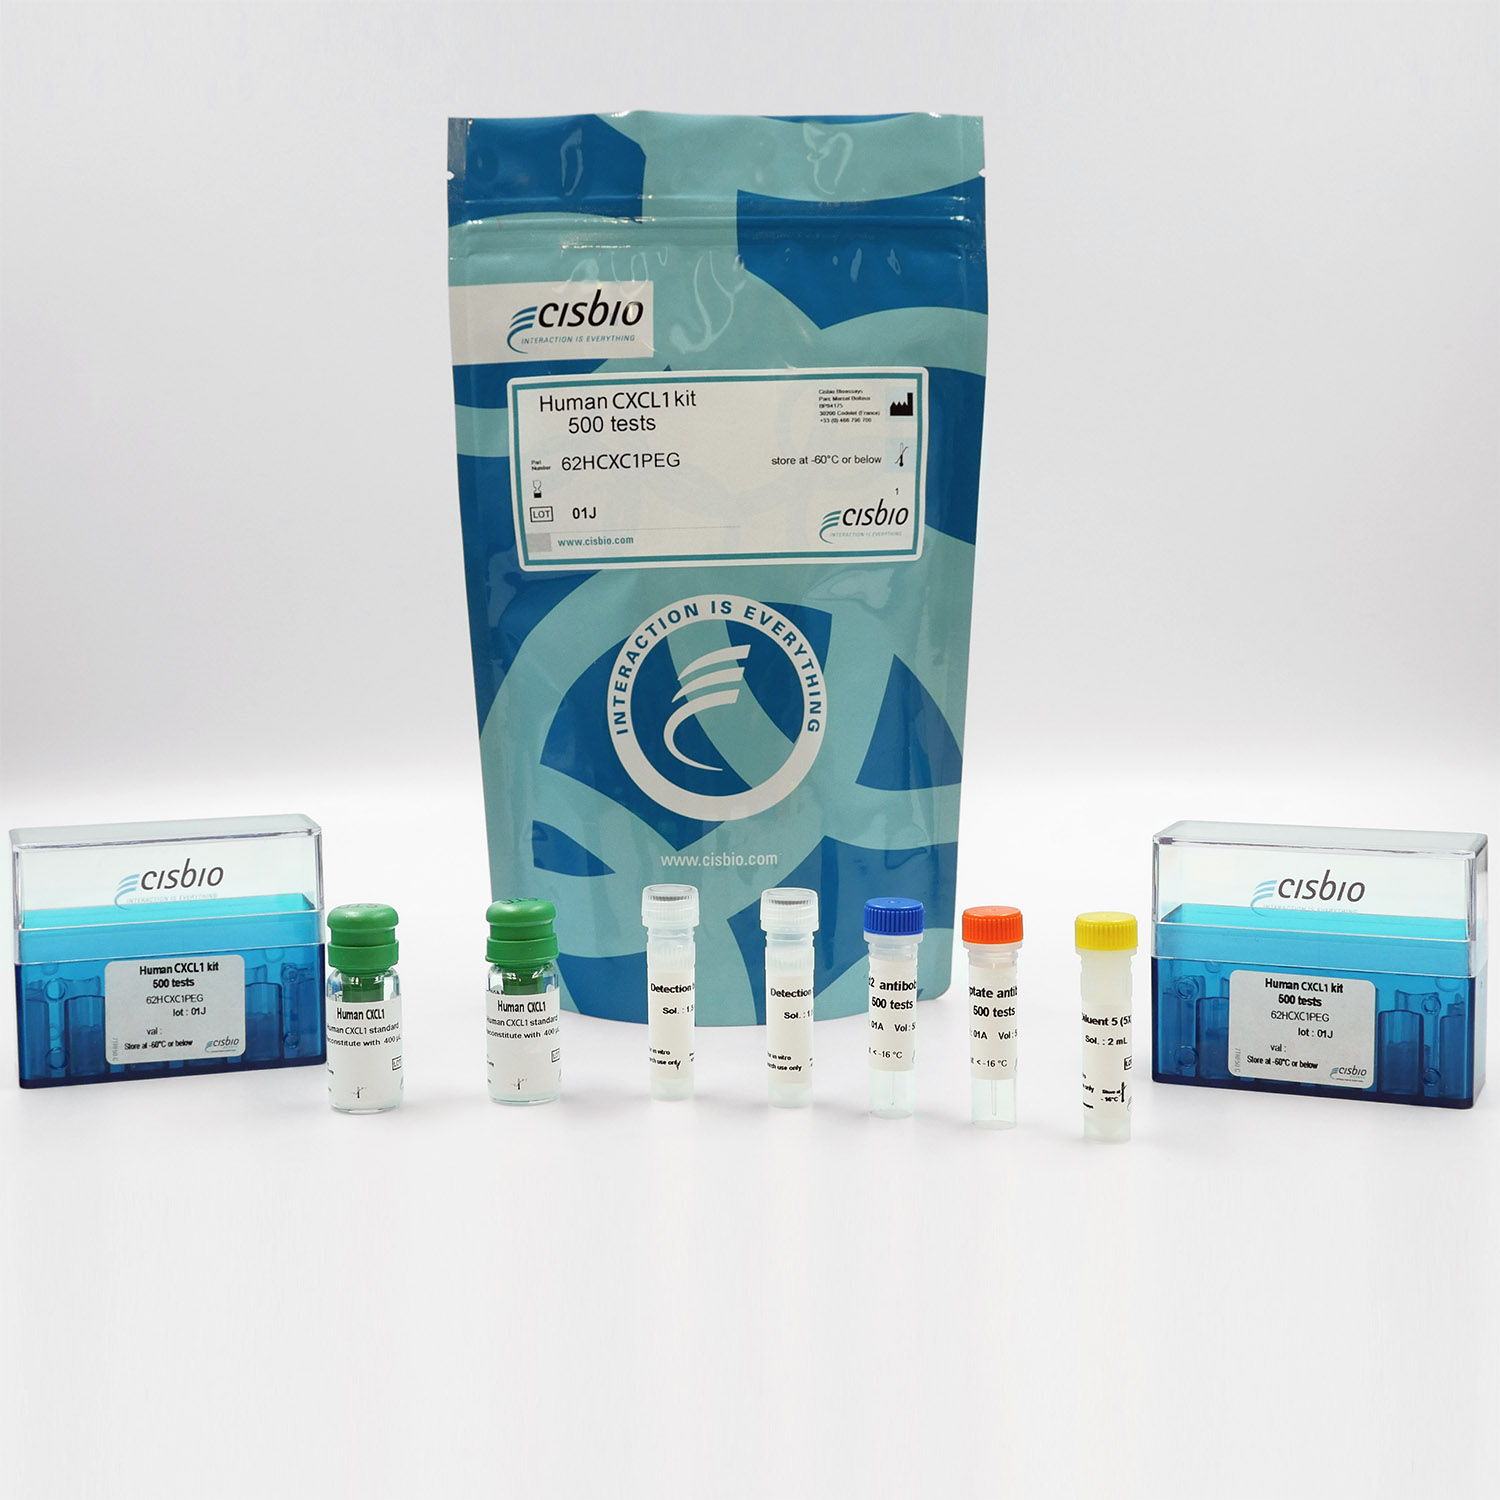 Photography of the Human CXCL1 kit and components